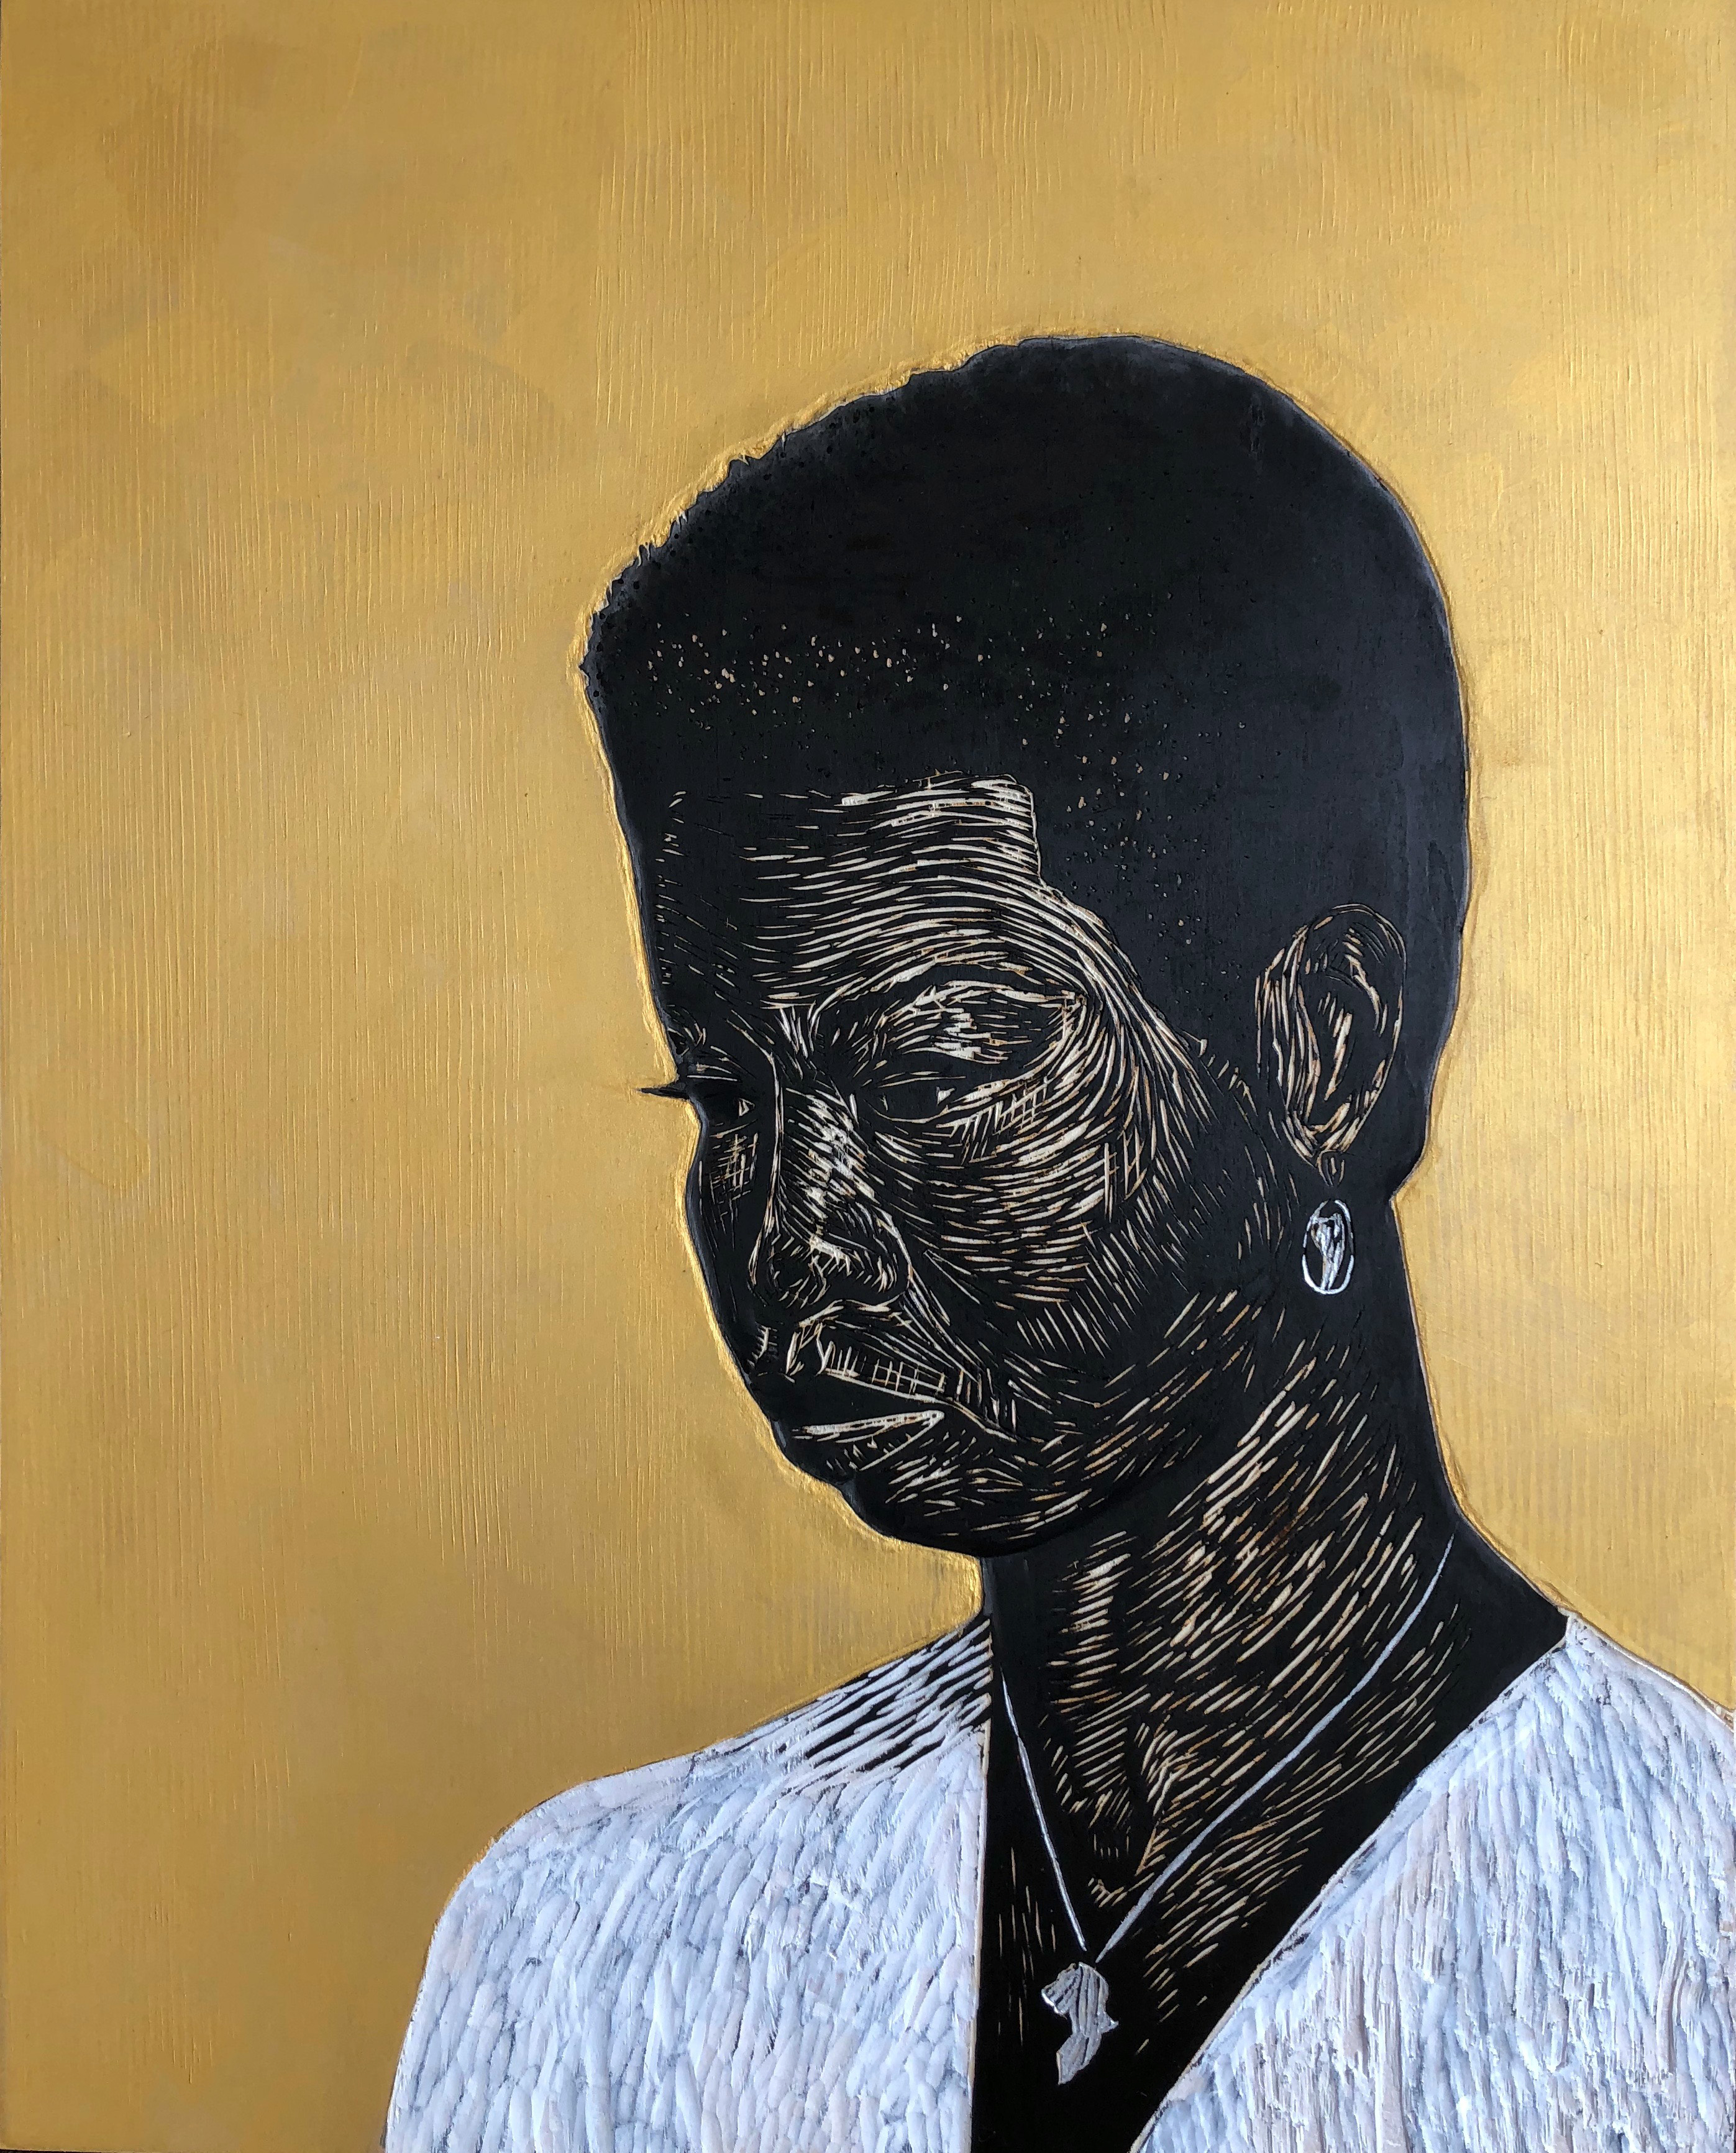 woodcut, relief carving, portrait, panel, mixed media, ink, black women, figurative art